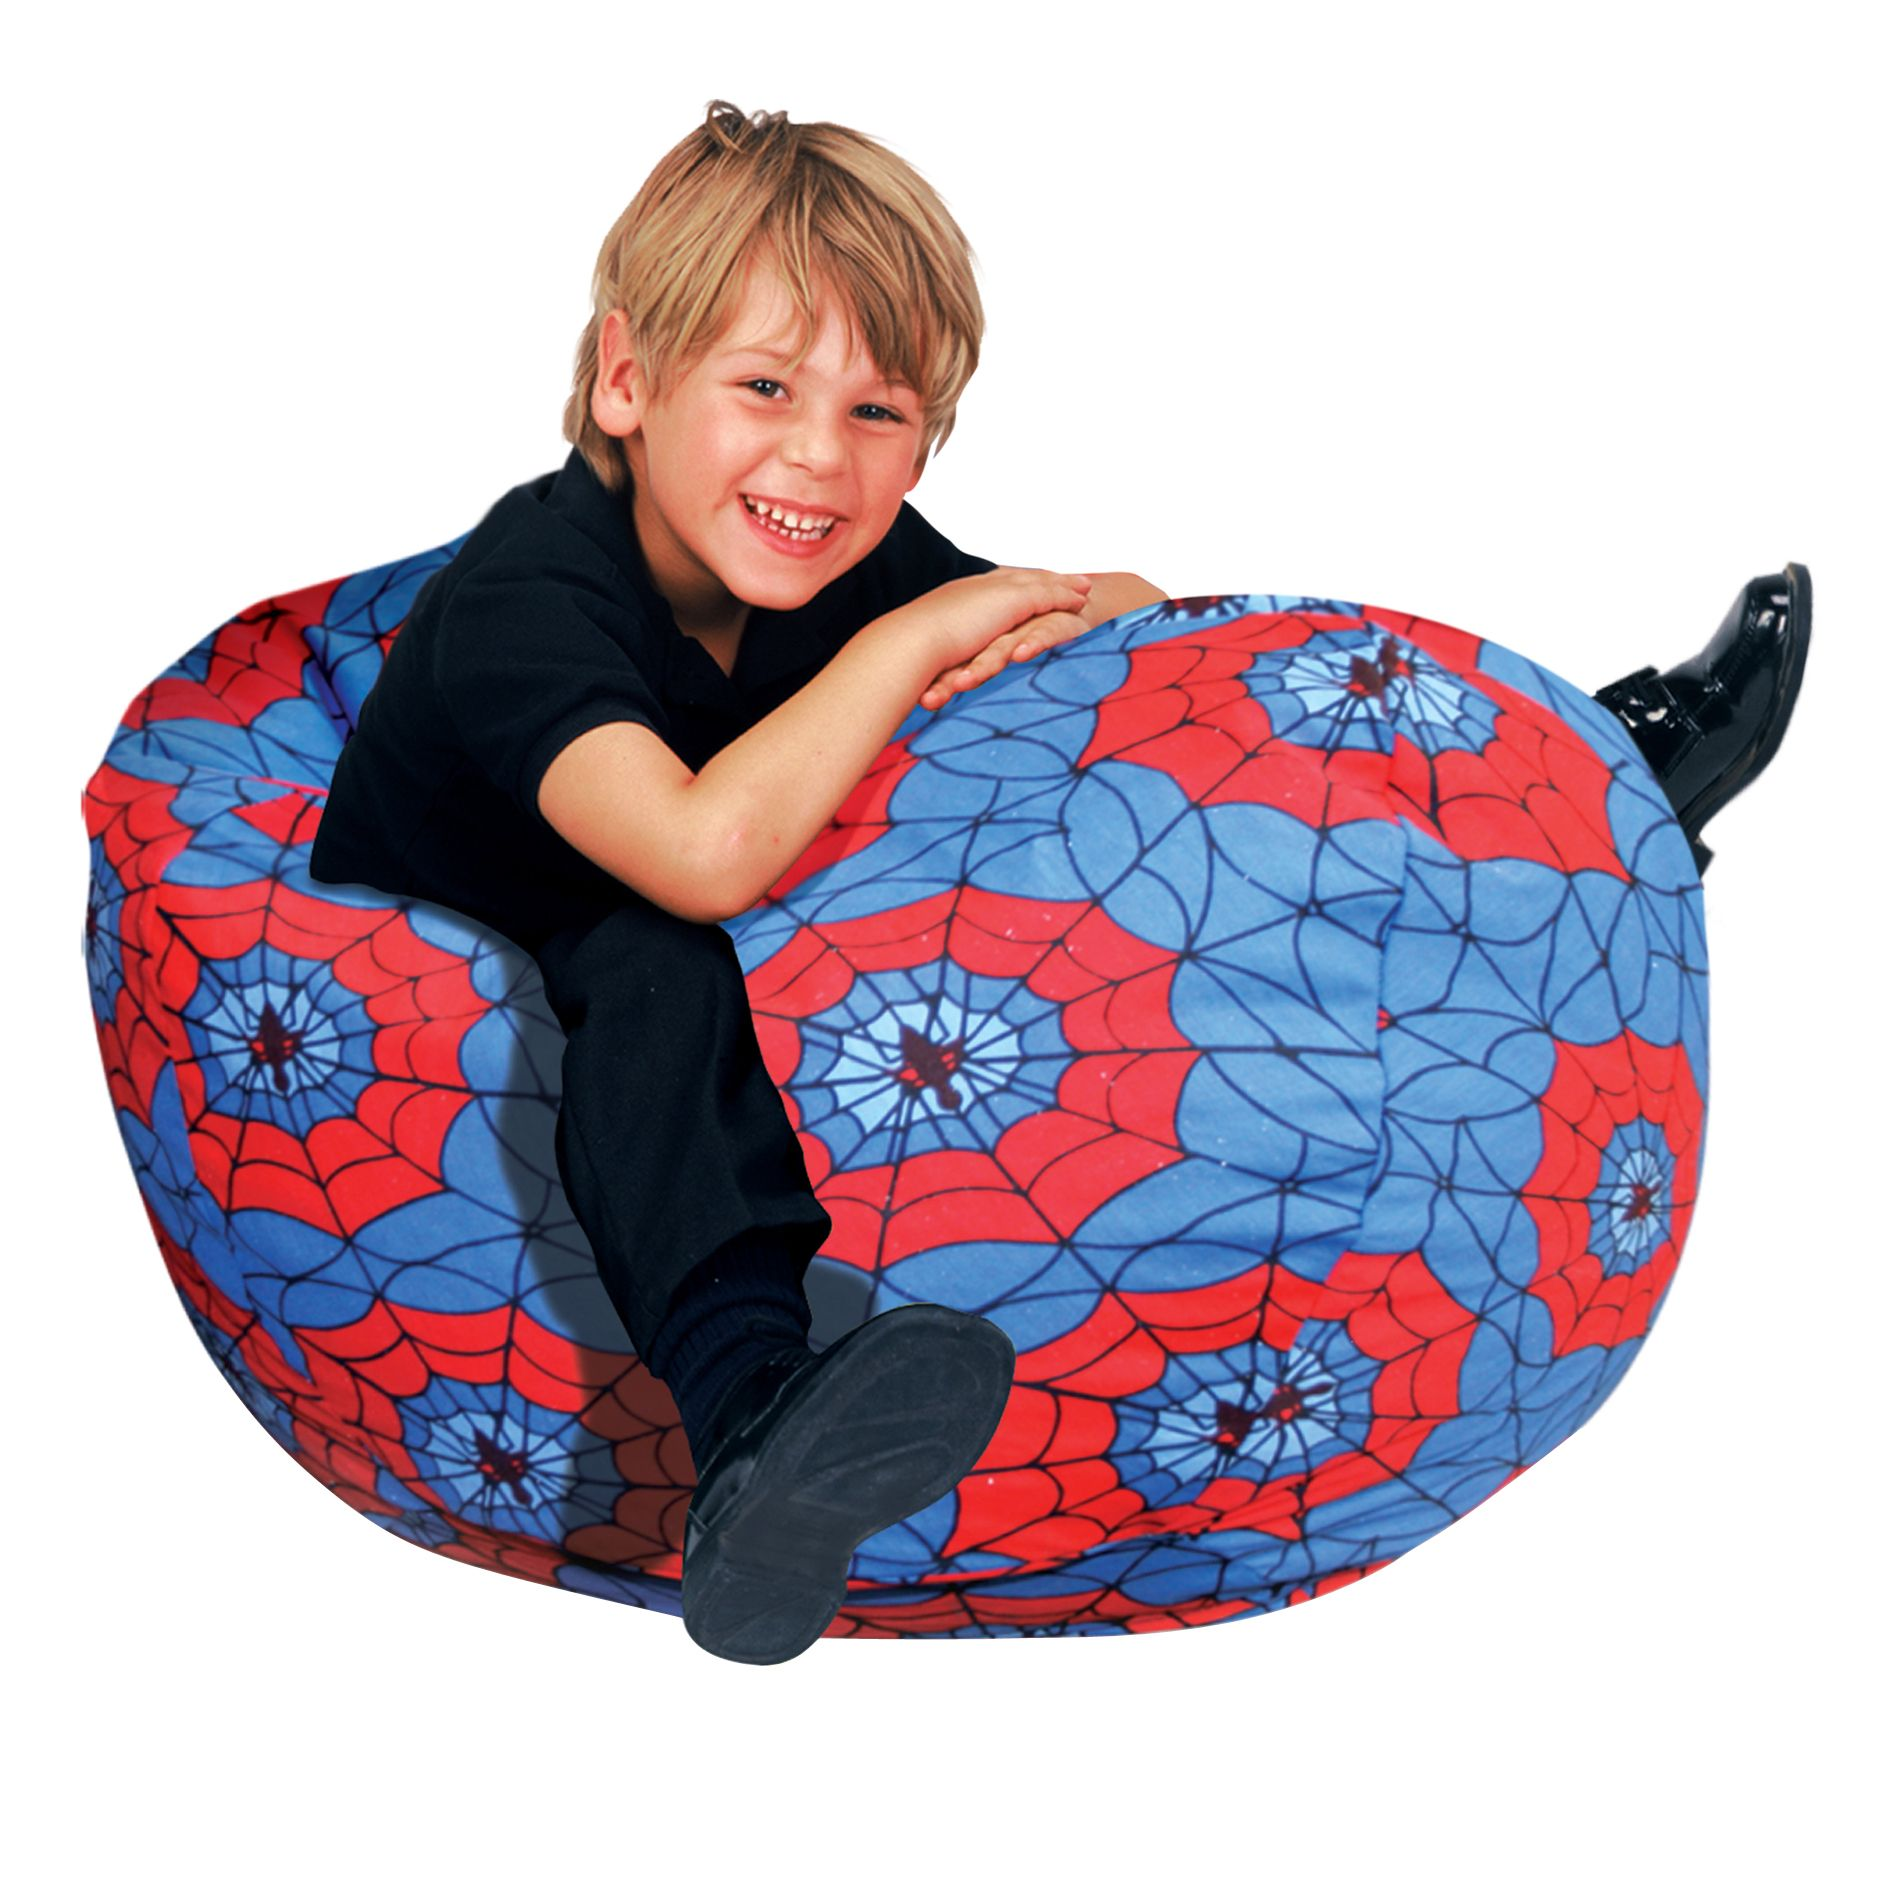 Bean Bag Chair Cover Soccer Bean Bag Chair Cover Fun Bean Bag Chair From Kmart